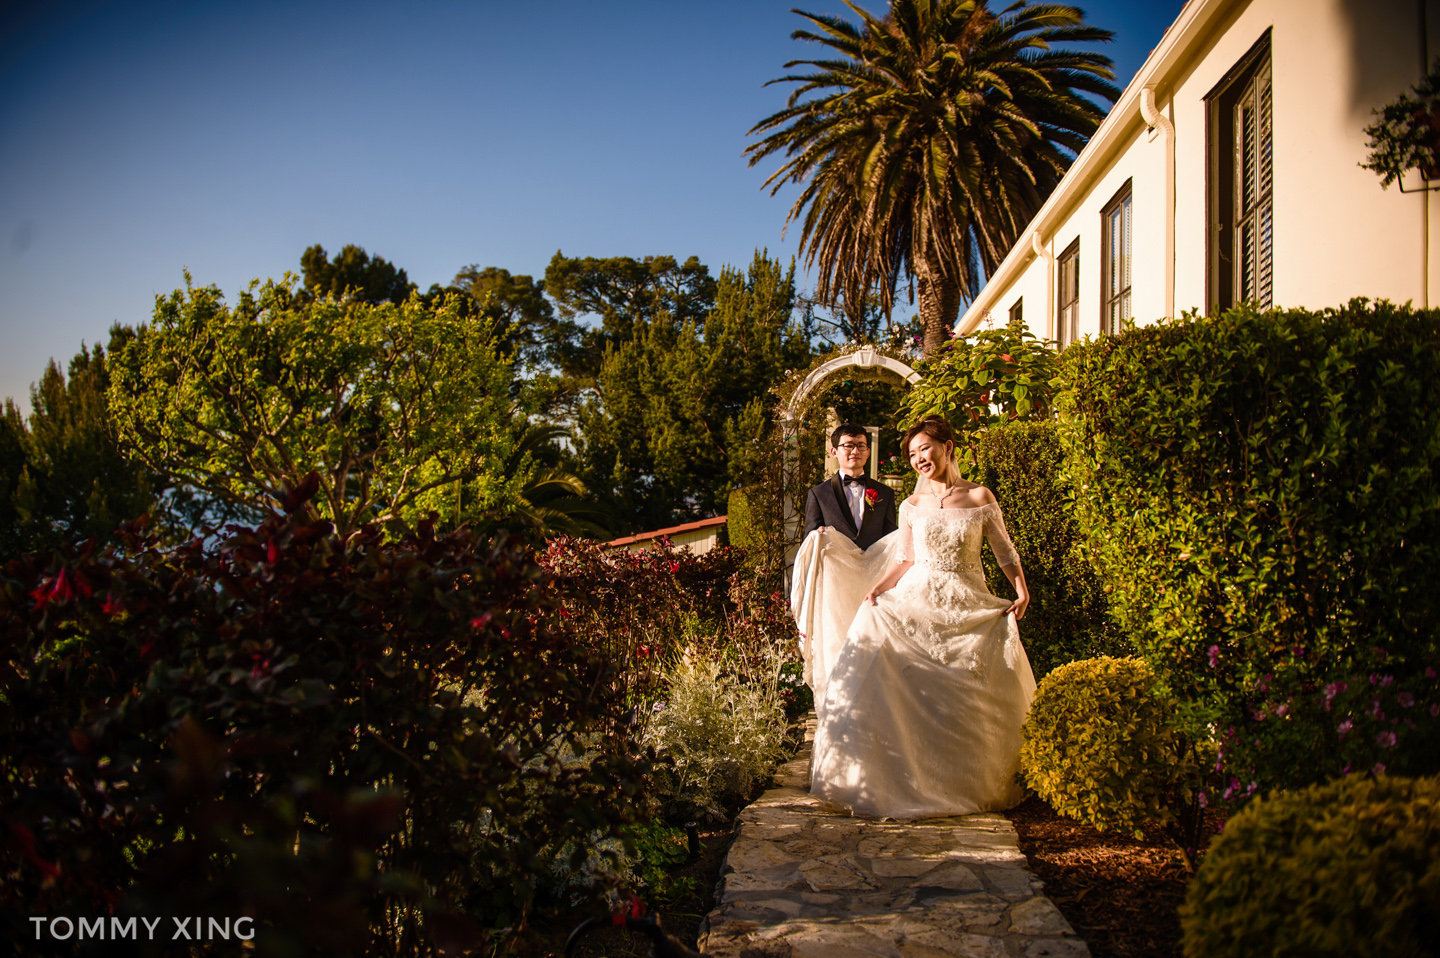 Los Angeles Wedding Photographer 洛杉矶婚礼婚纱摄影师 Tommy Xing-176.JPG